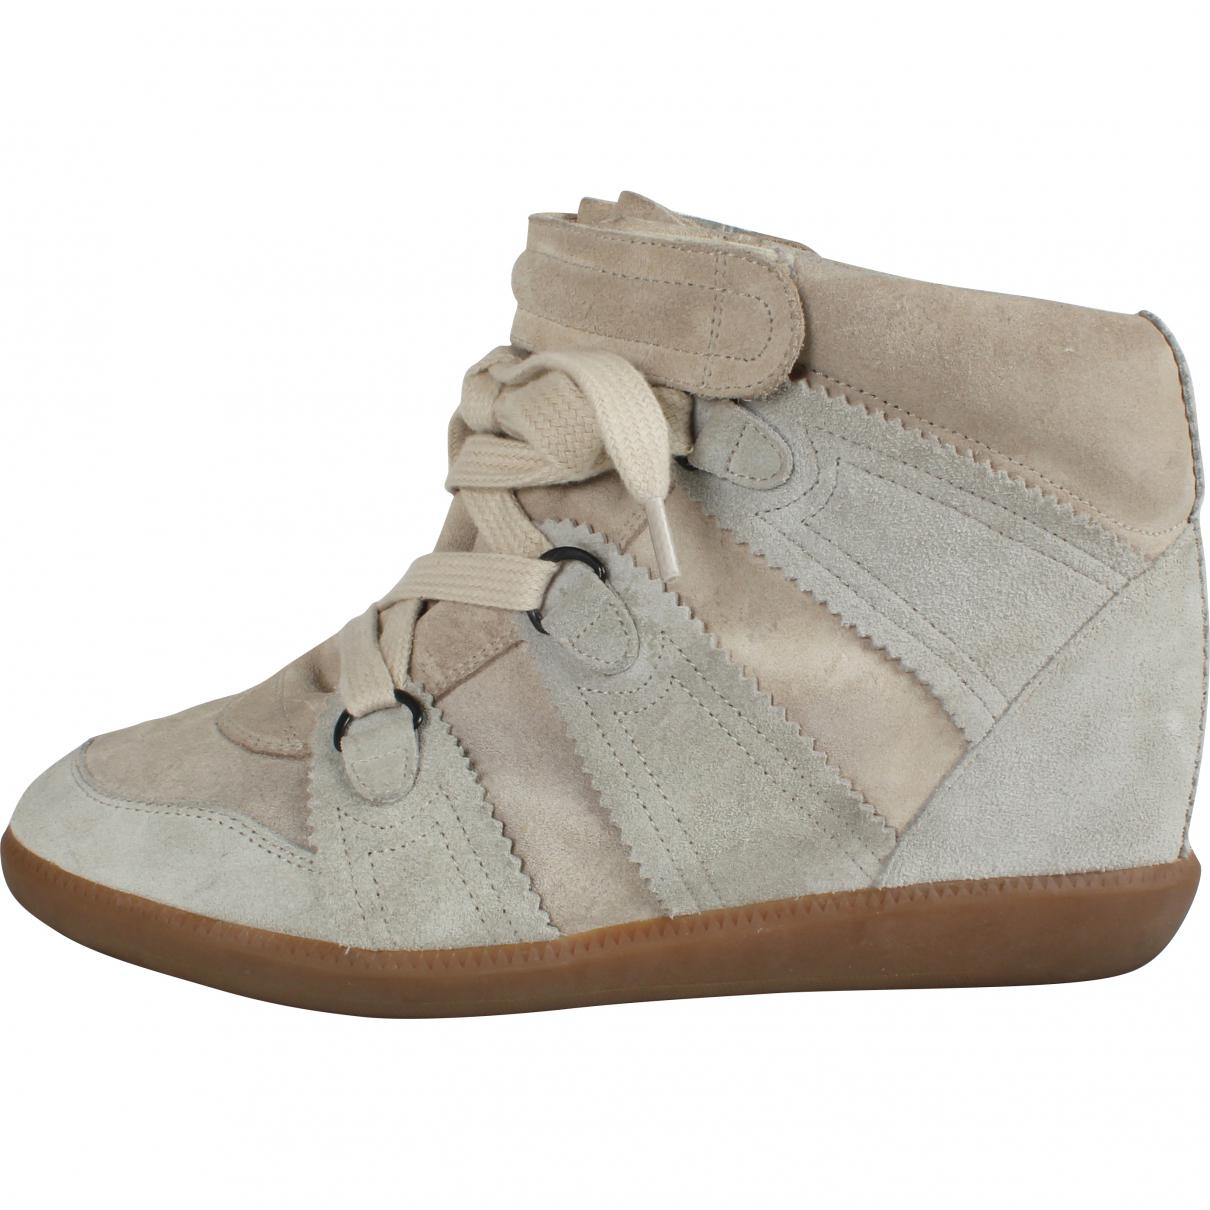 Pre-owned - Trainers Isabel Marant h6MzGEiikl